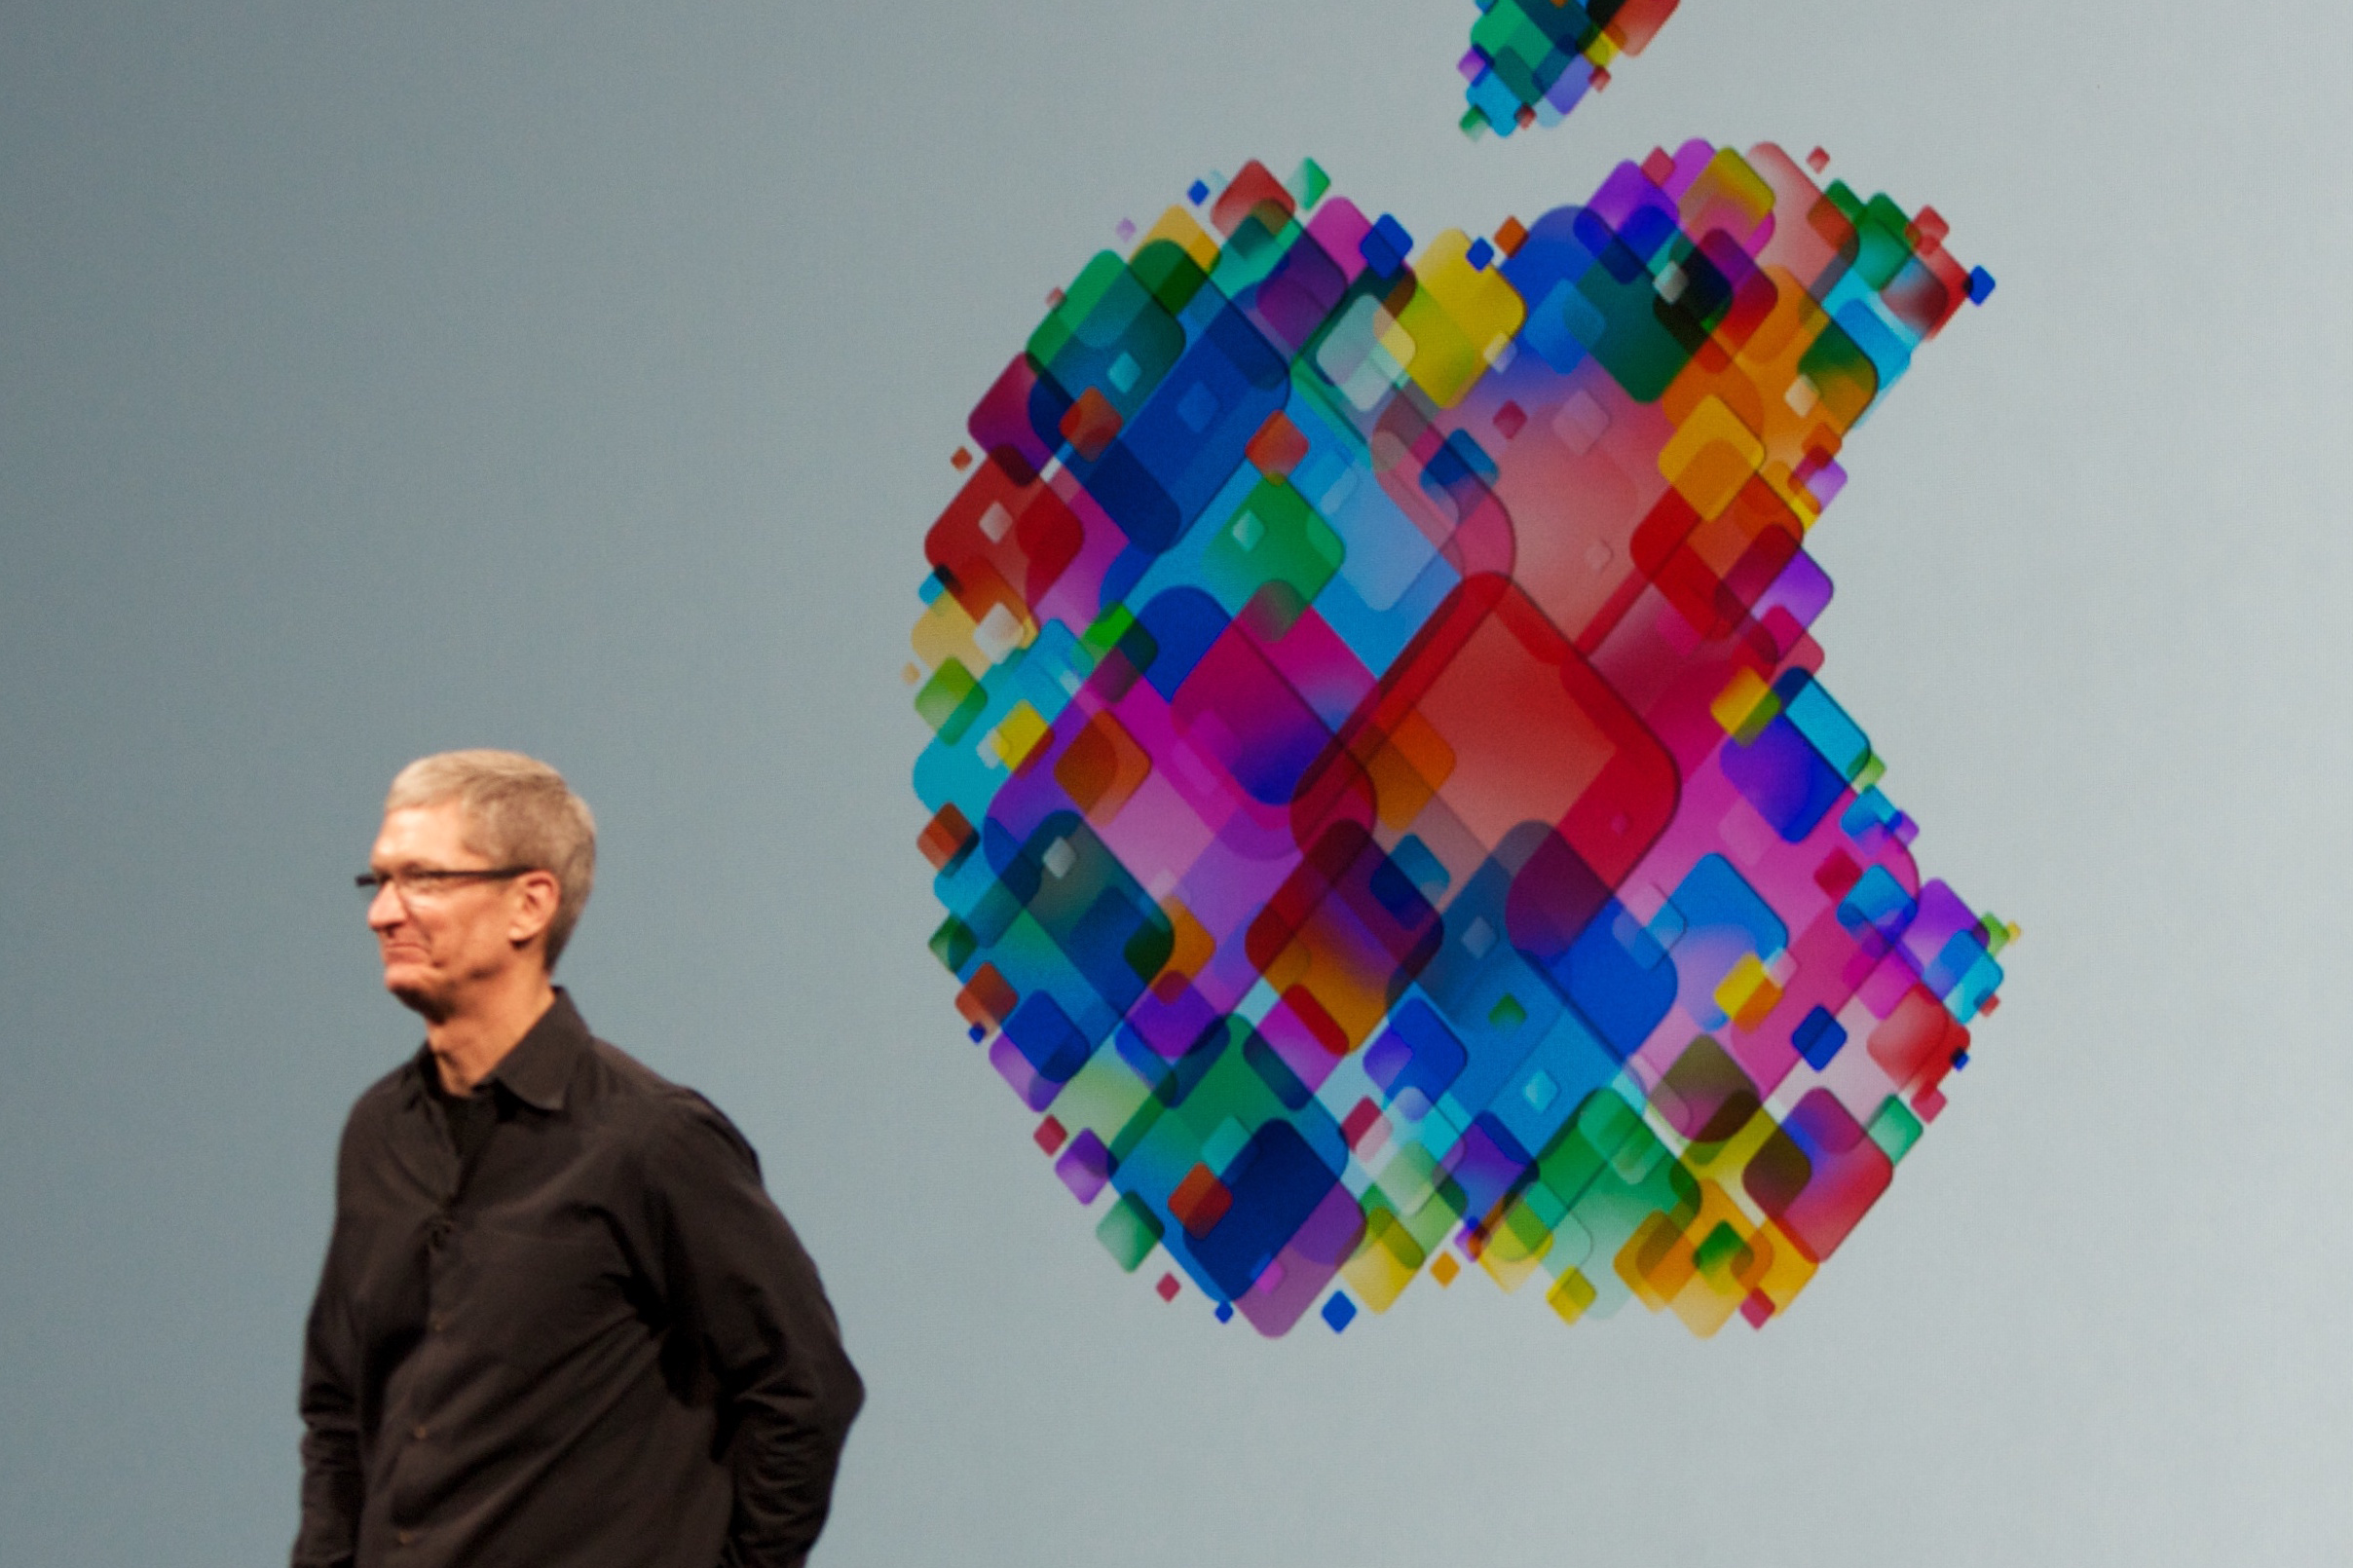 Apple considers North Carolina campus over objections from LGBT+ advocates